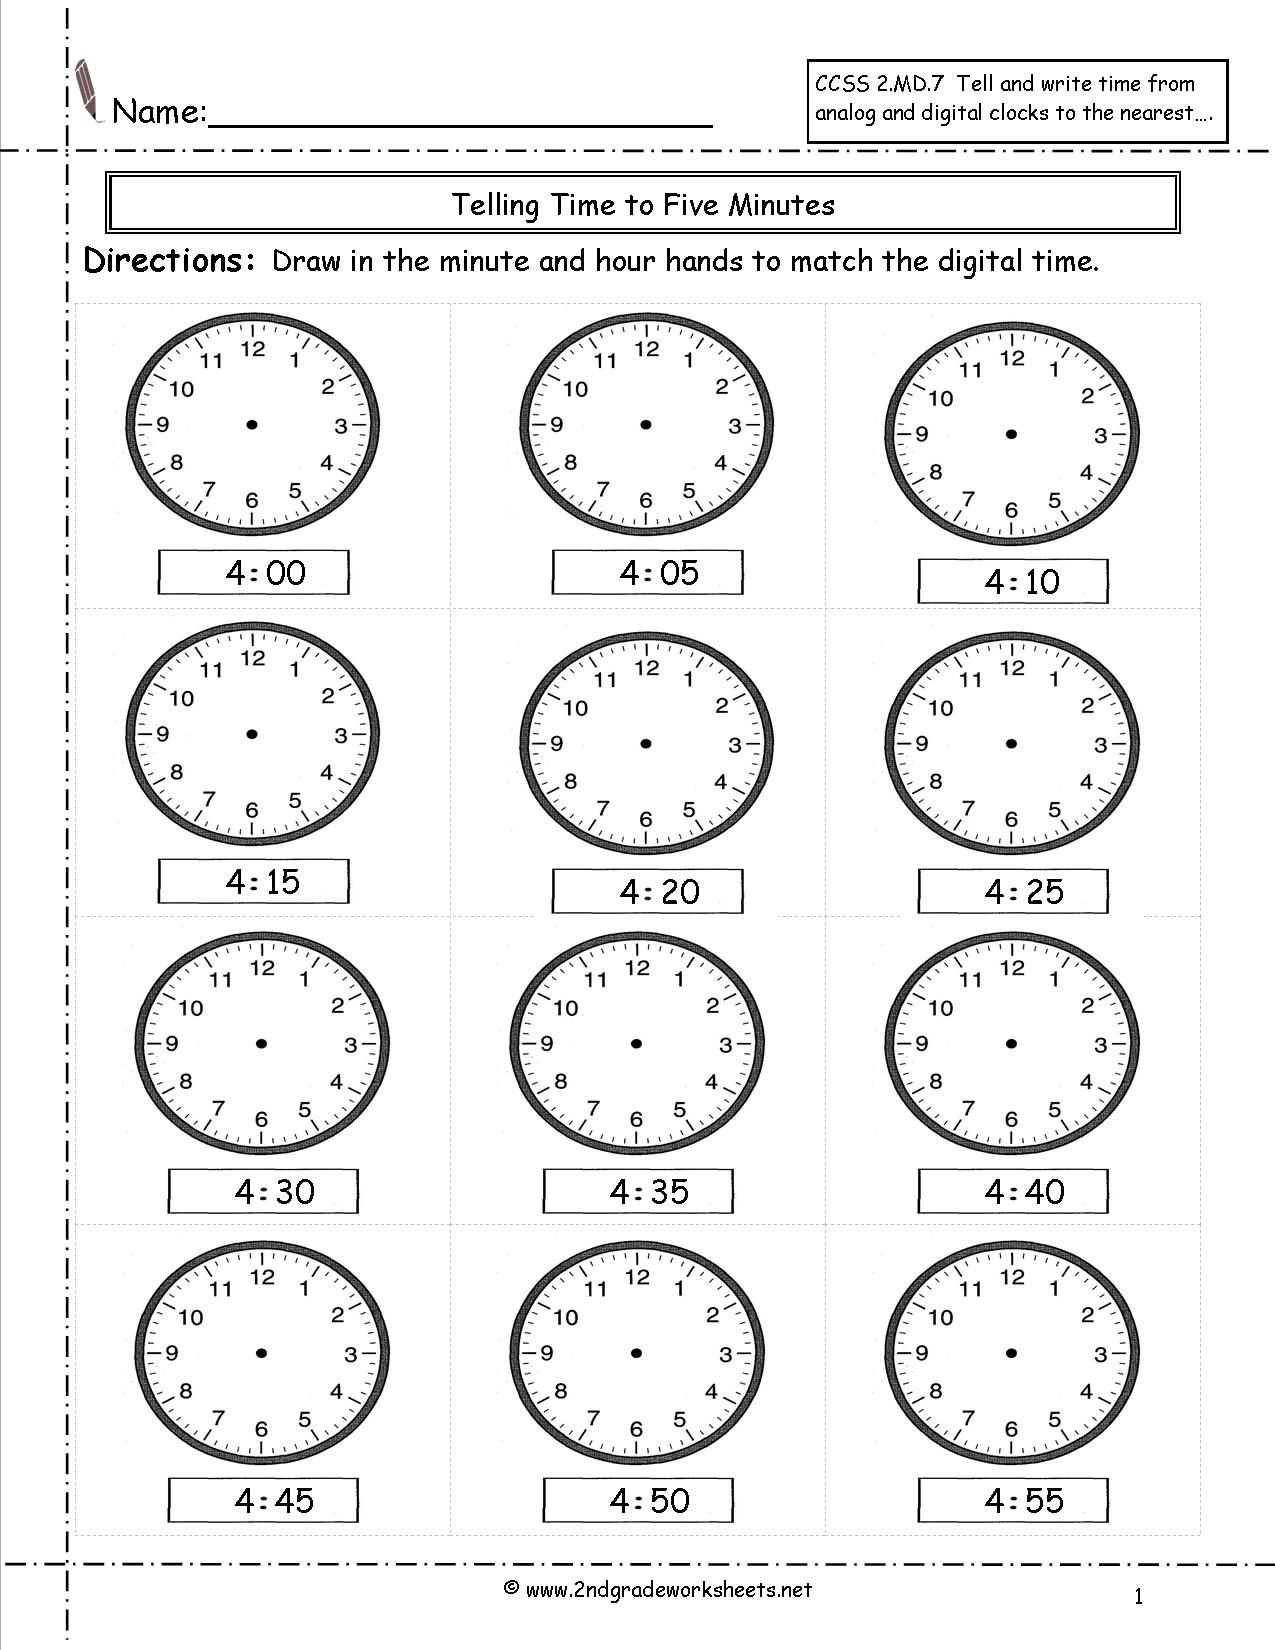 telling time worksheets school stuff first grade math worksheets worksheets clock worksheets. Black Bedroom Furniture Sets. Home Design Ideas